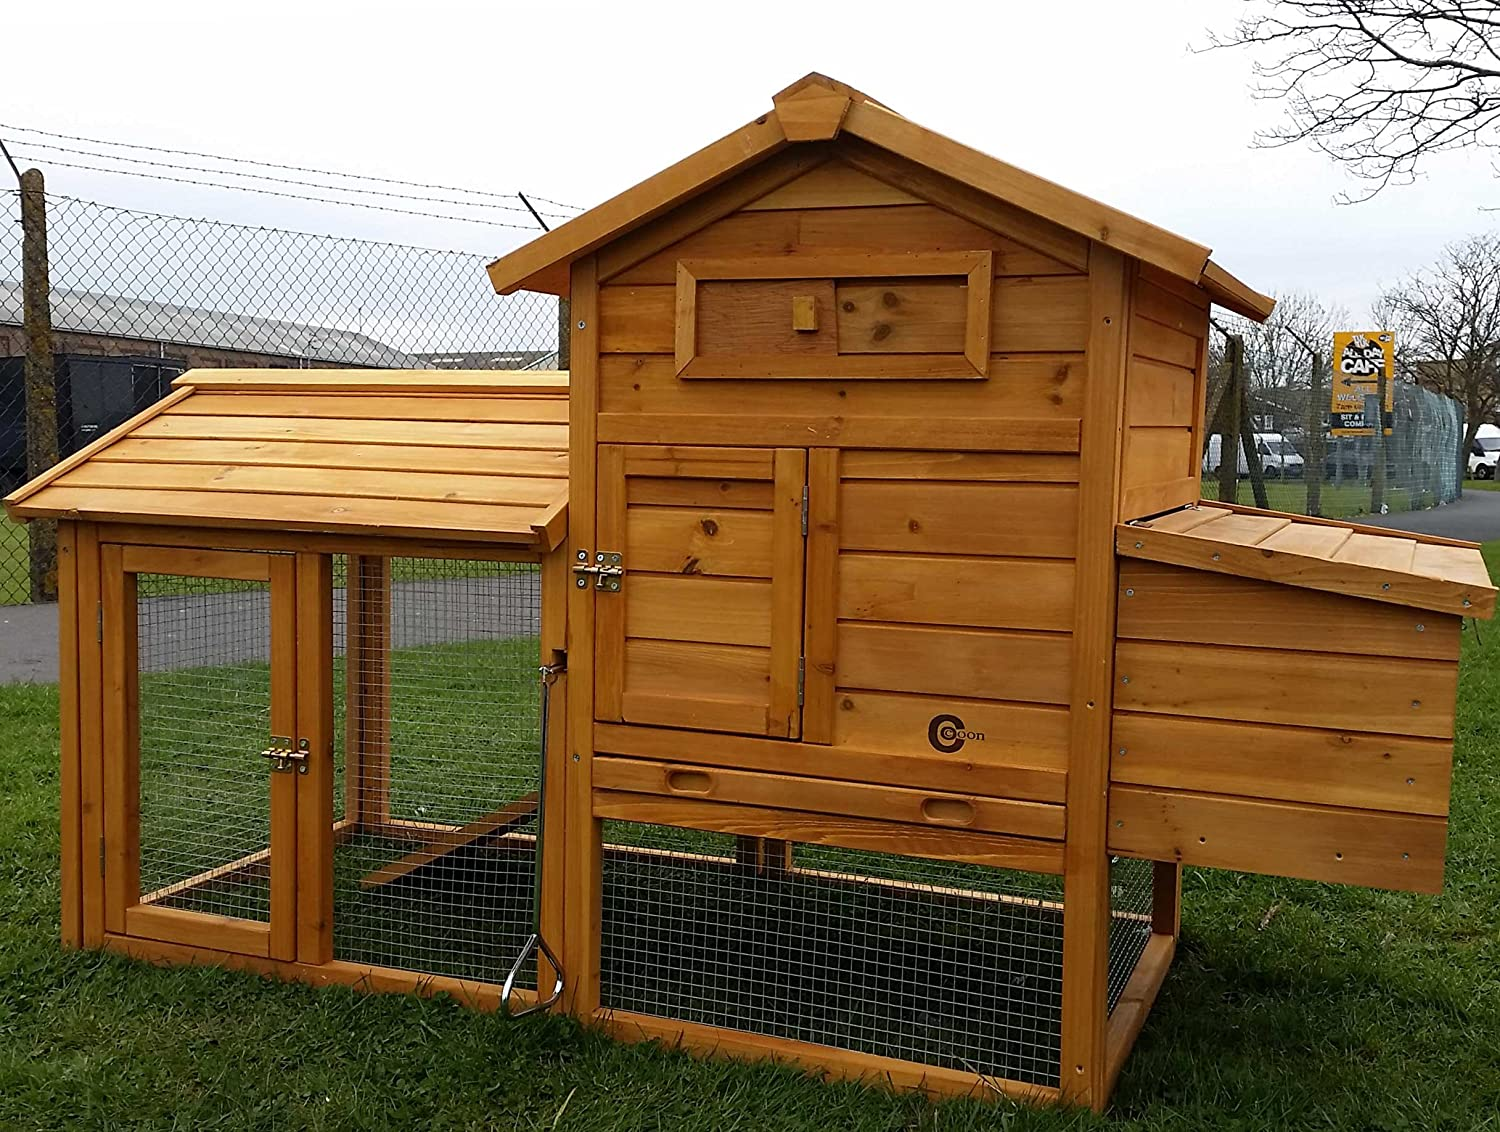 hen hutch run pet chicken nest homcom s house clearance supplies box coop hutches wooden rabbit size poultry